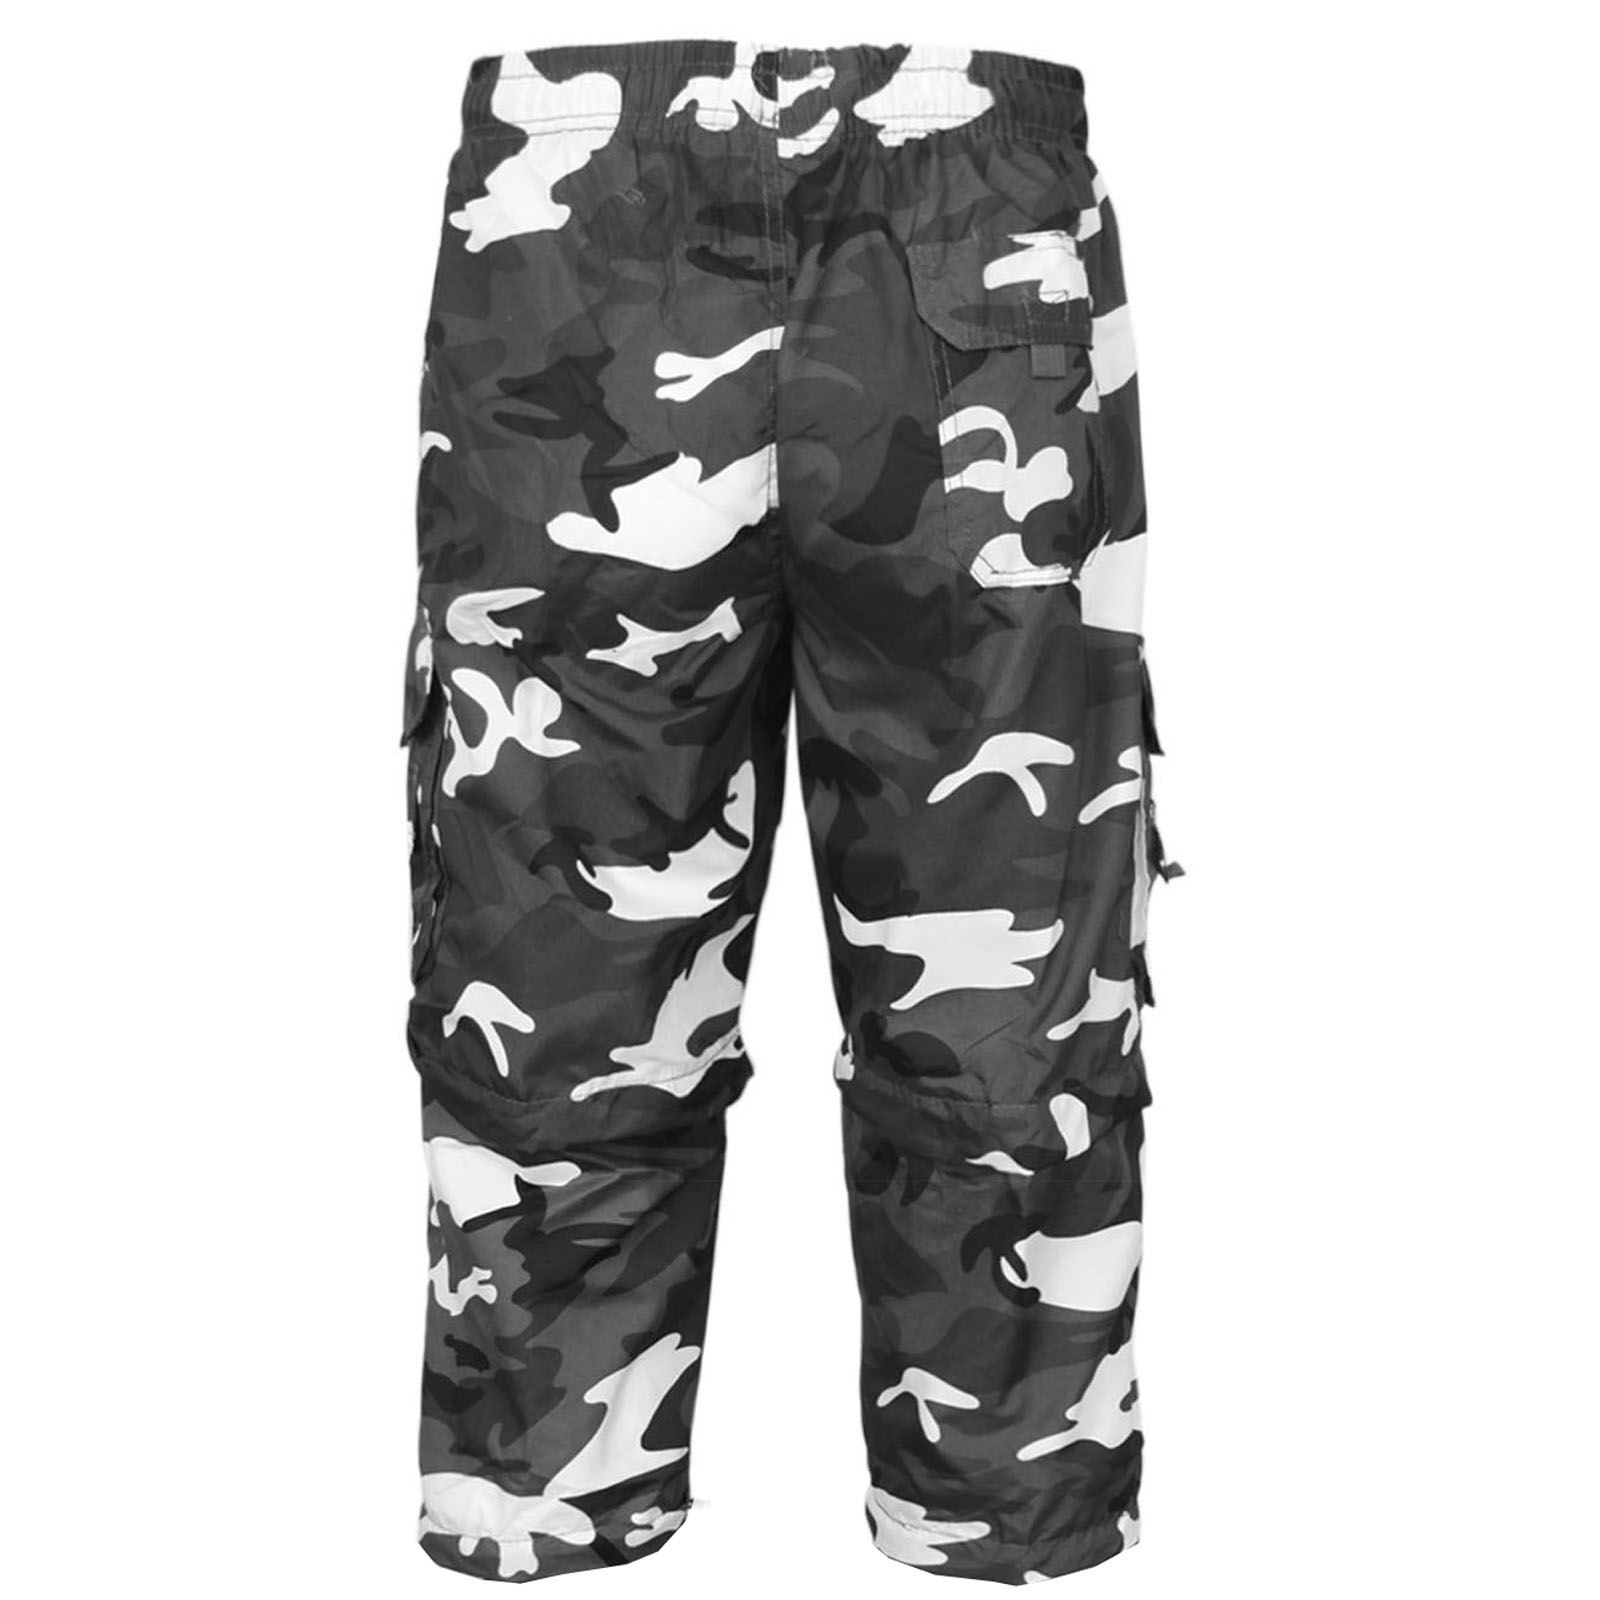 MENS-2-IN-1-CAMOUFLAGE-SHORTS-ARMY-ZIP-OFF-COMBAT-CARGO-TROUSERS-WORK-PANT-S-2XL thumbnail 7